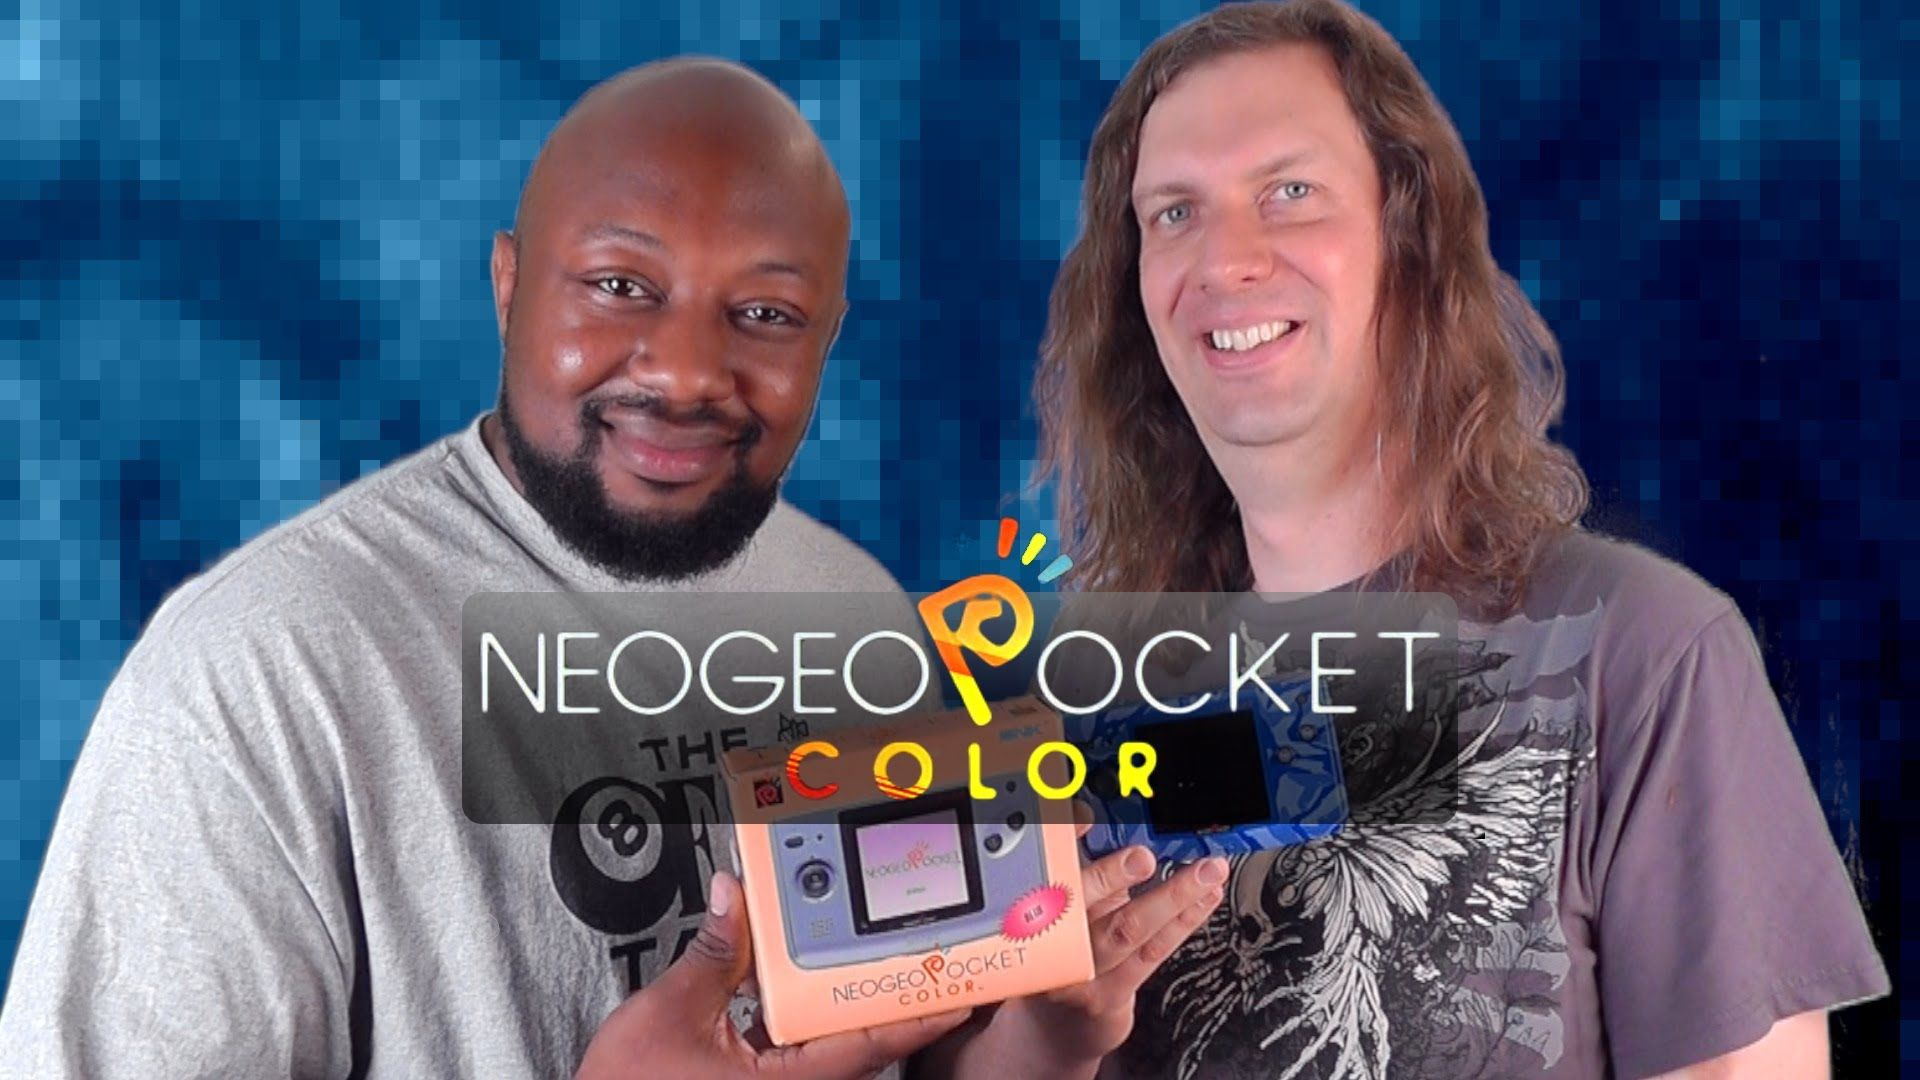 Reggie comes by to talk about one of his favorite handhelds: the NEO GEO Pocket Color. This competitor to the Gameboy Color didn't make much of a splash, but it has a hardcore dedicated fan base today and some great games for it.